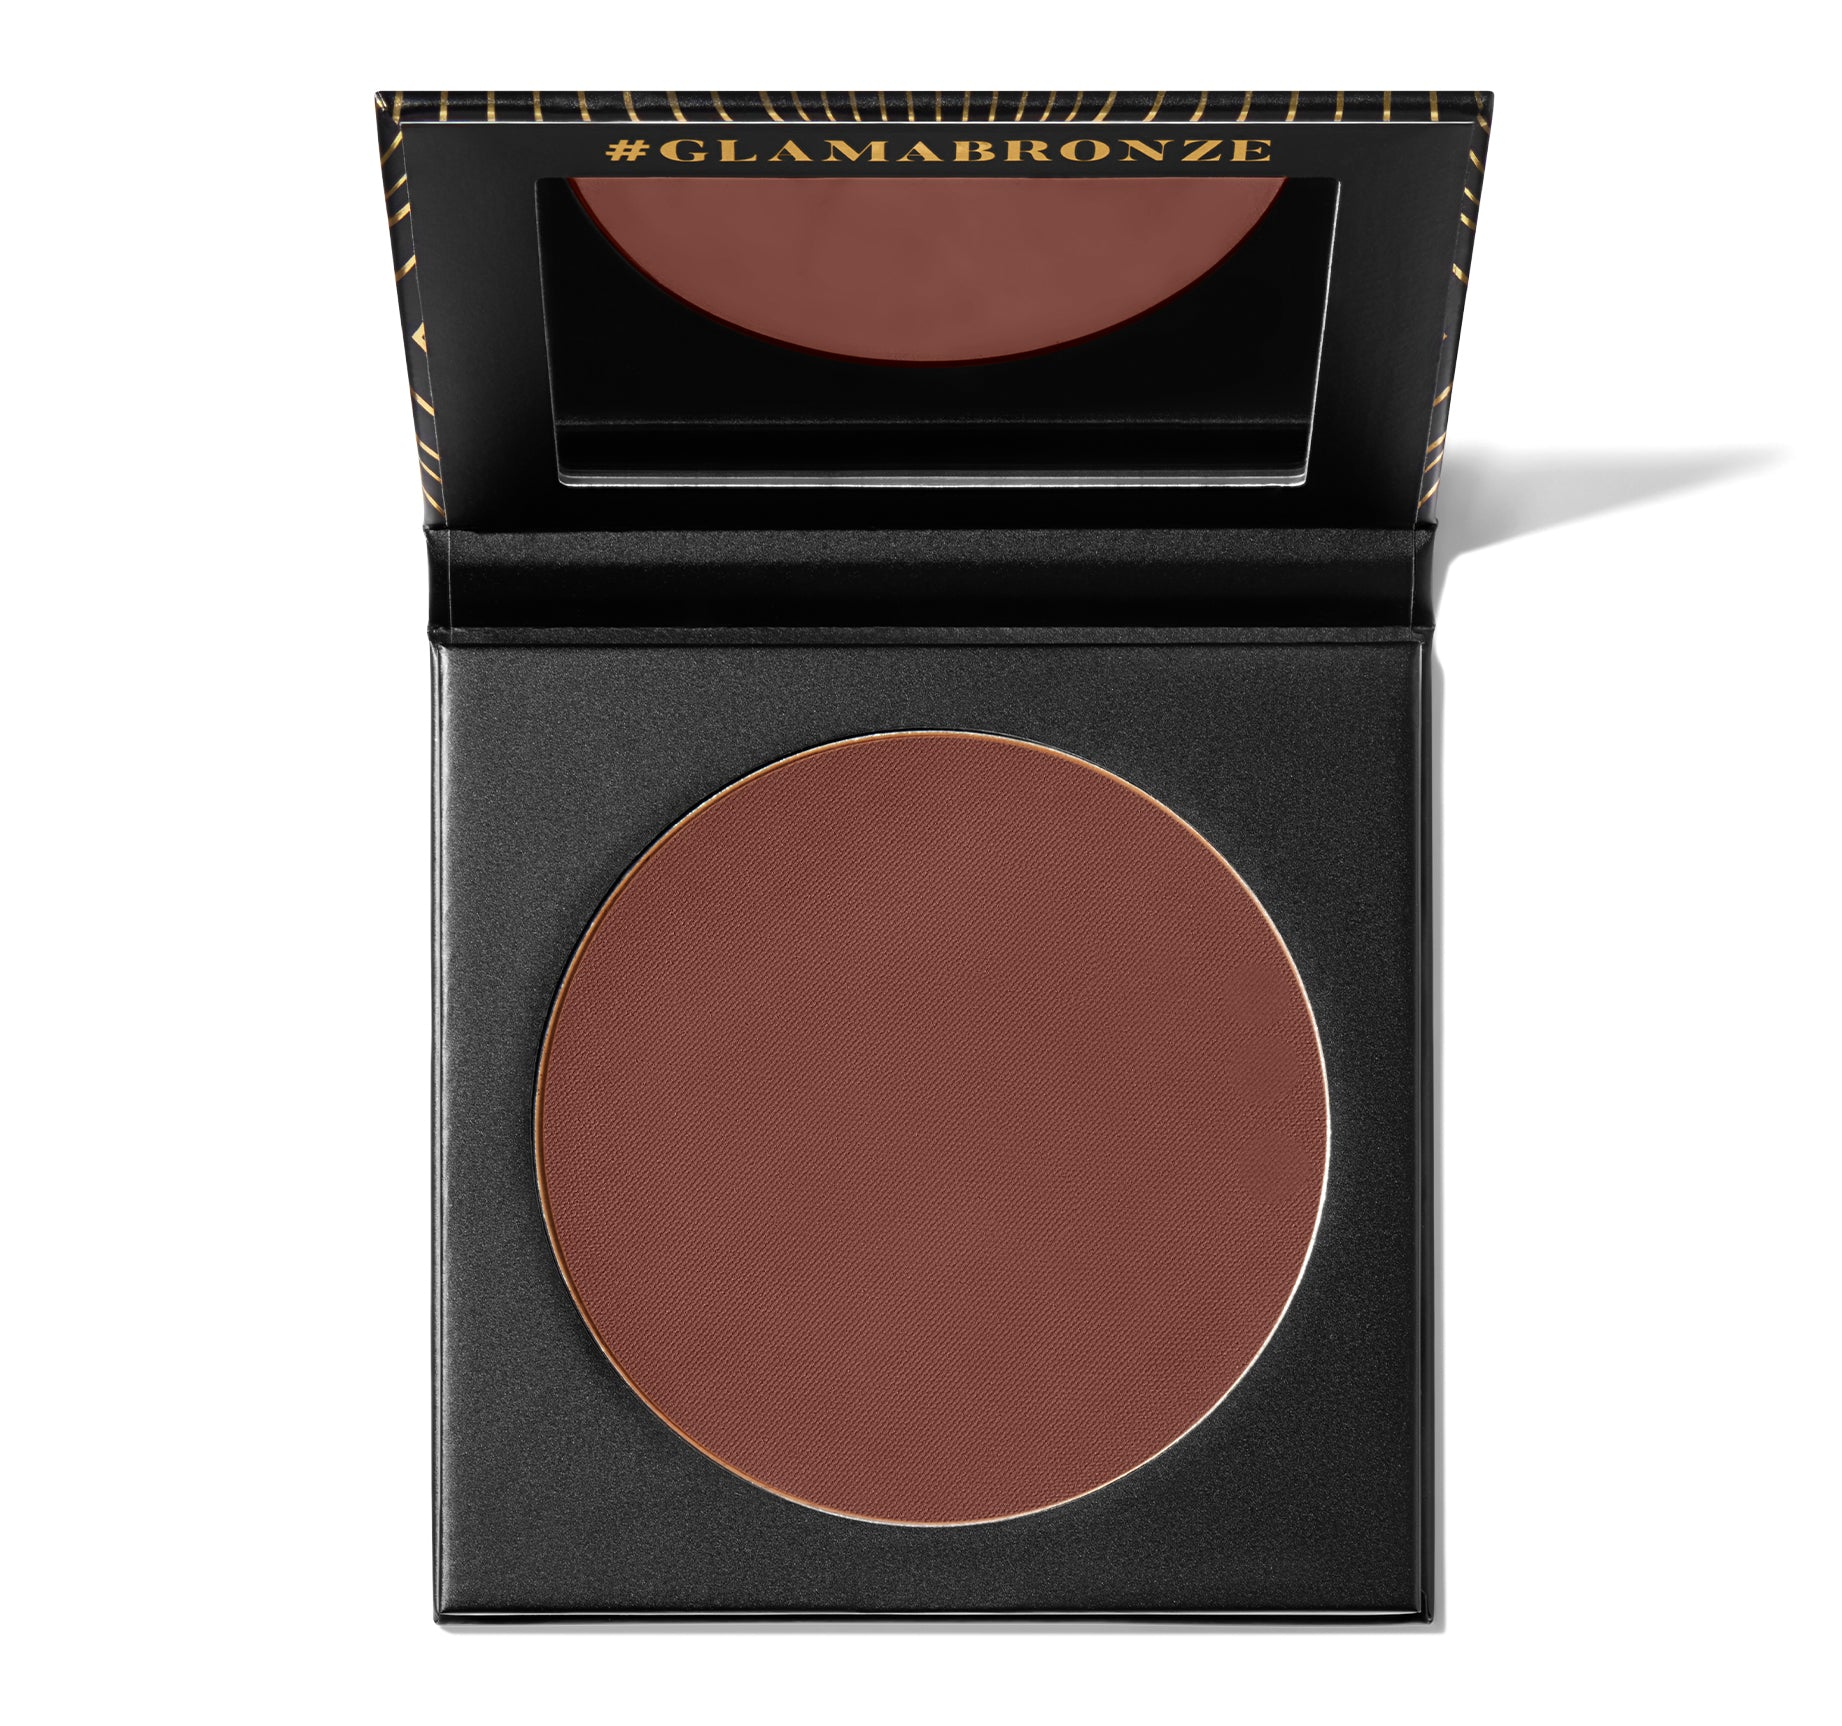 GLAMABRONZE FACE & BODY BRONZER - PRODIGY, view larger image